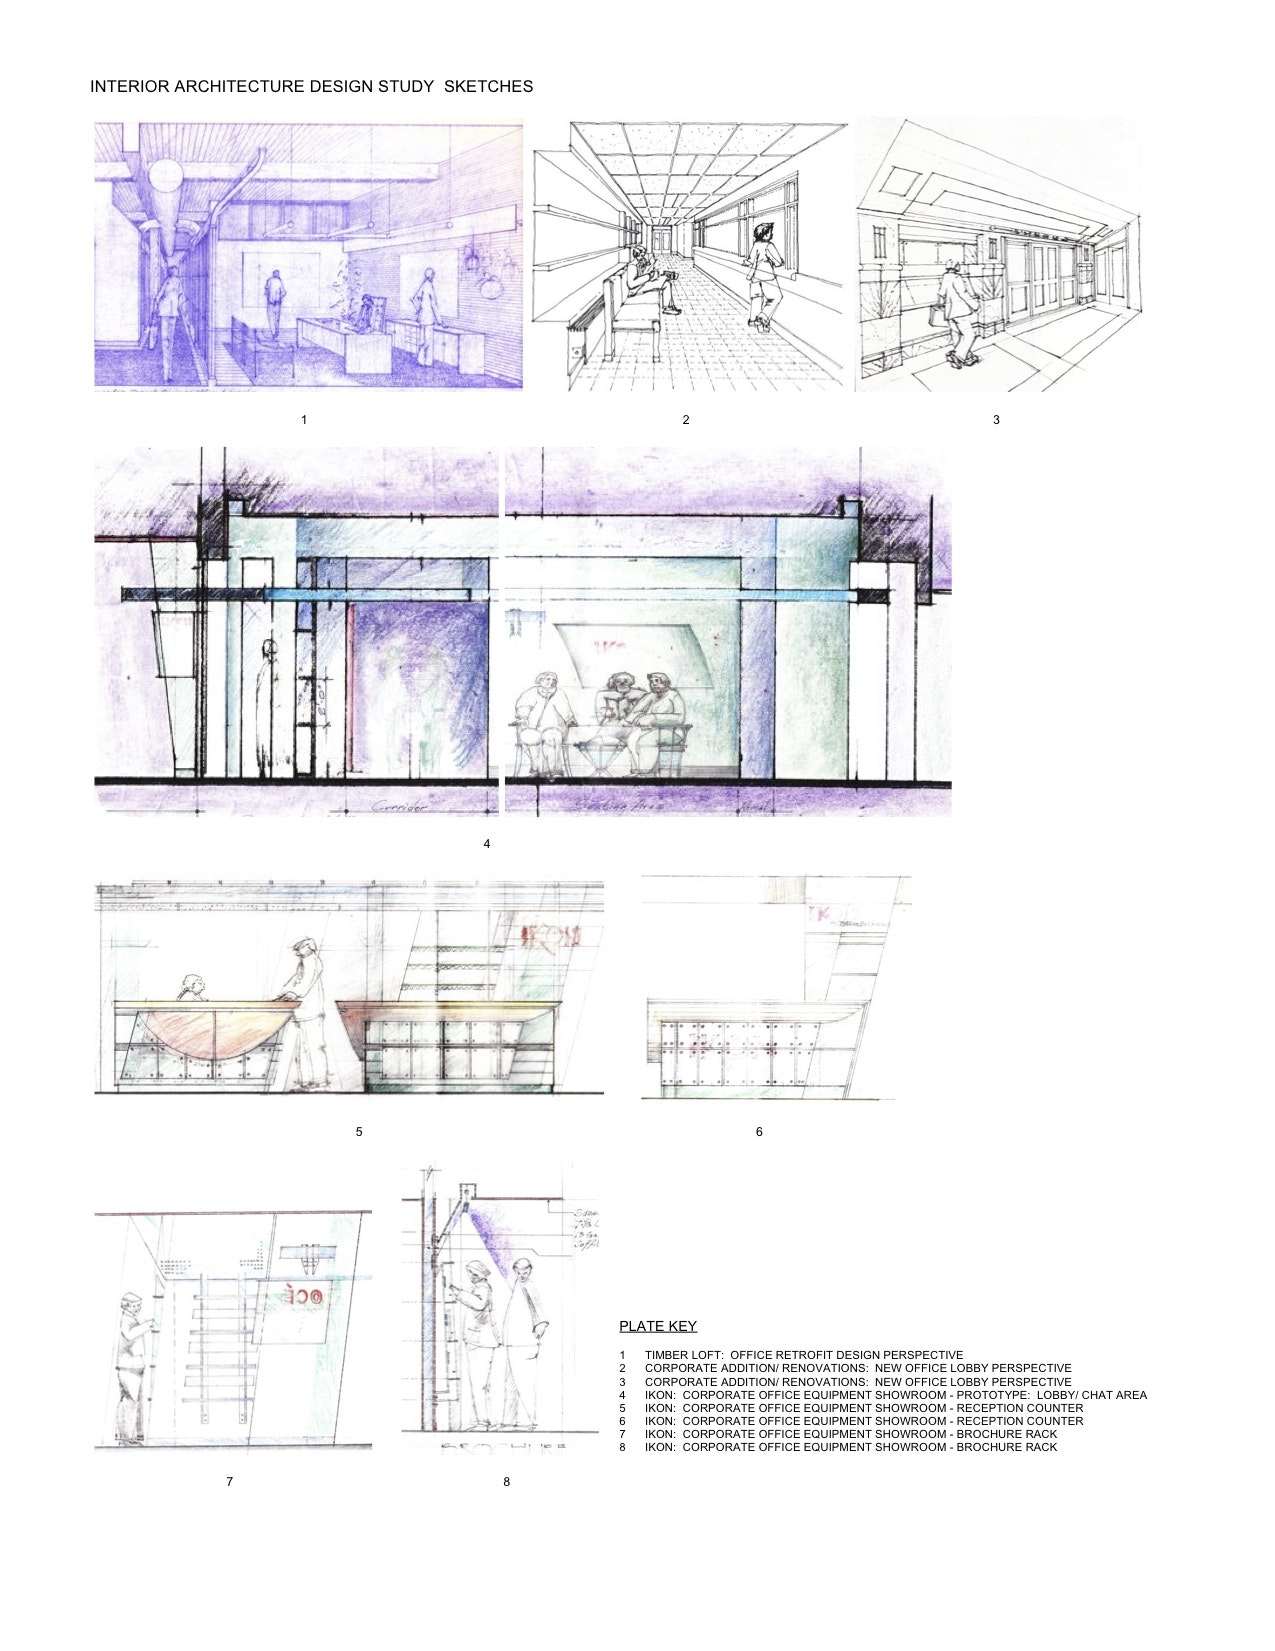 Ikon Corporate Showrooms  Prototypes  Design And Details